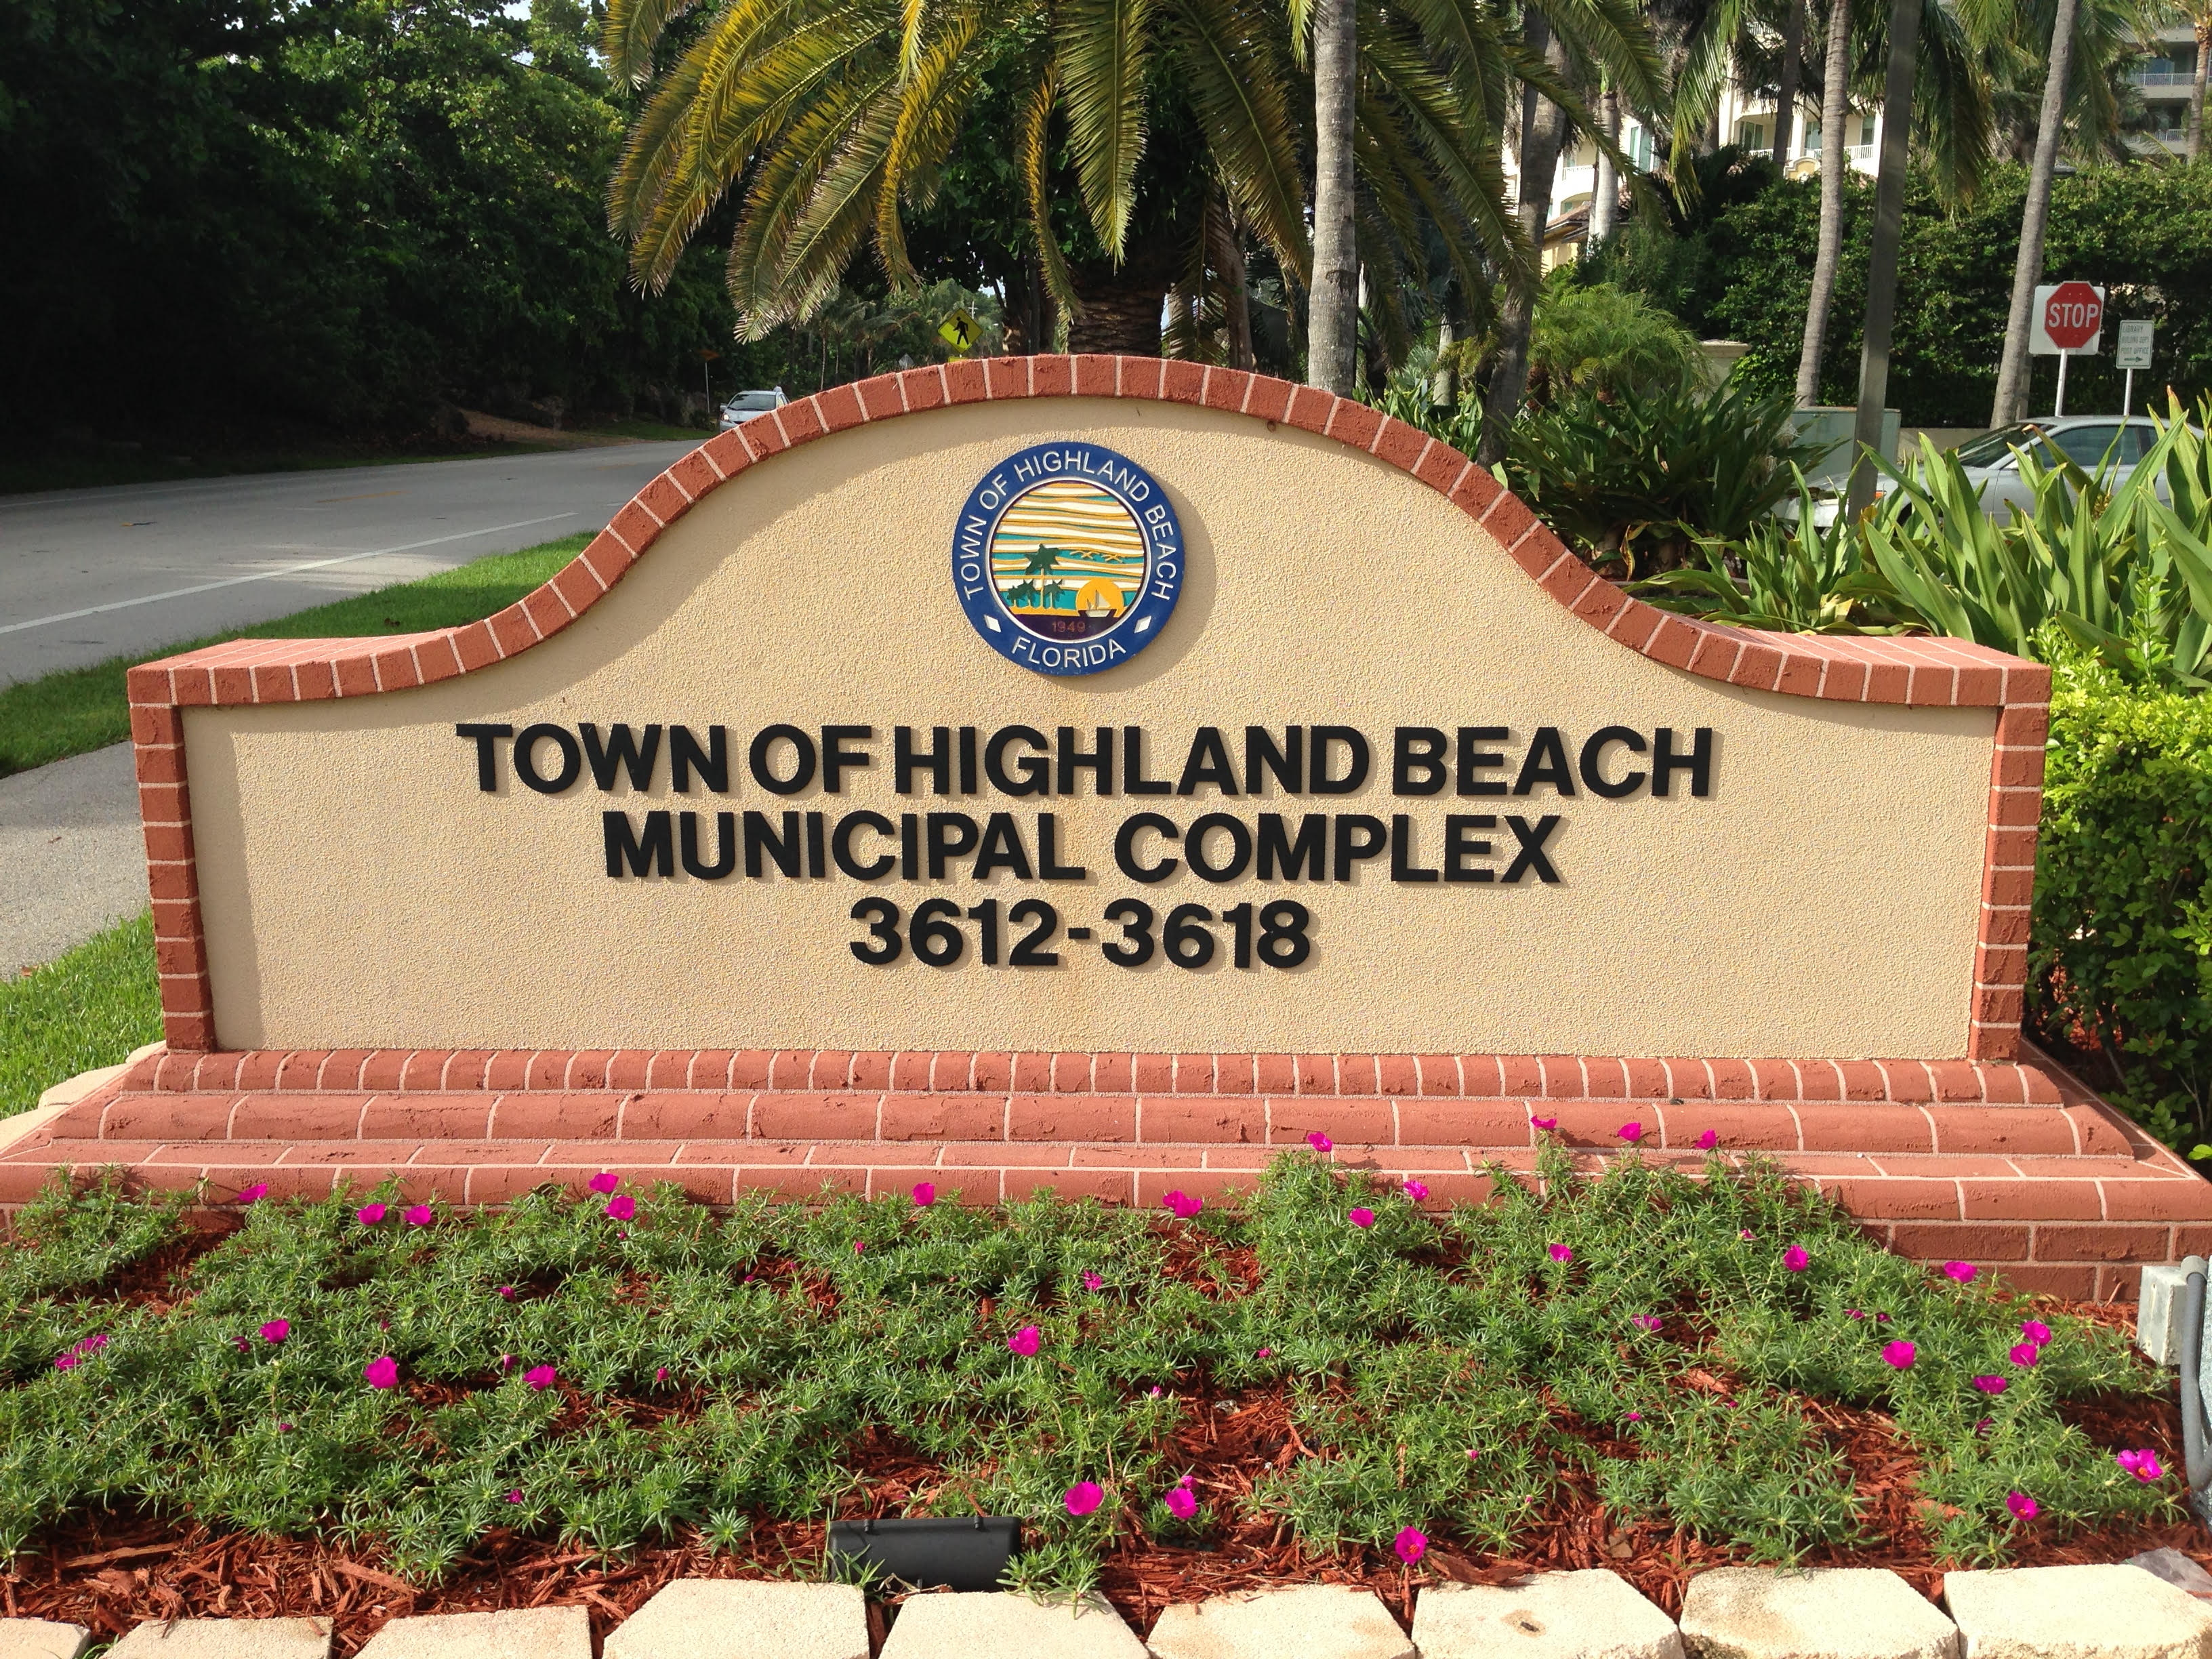 Highland Beach City Building sign